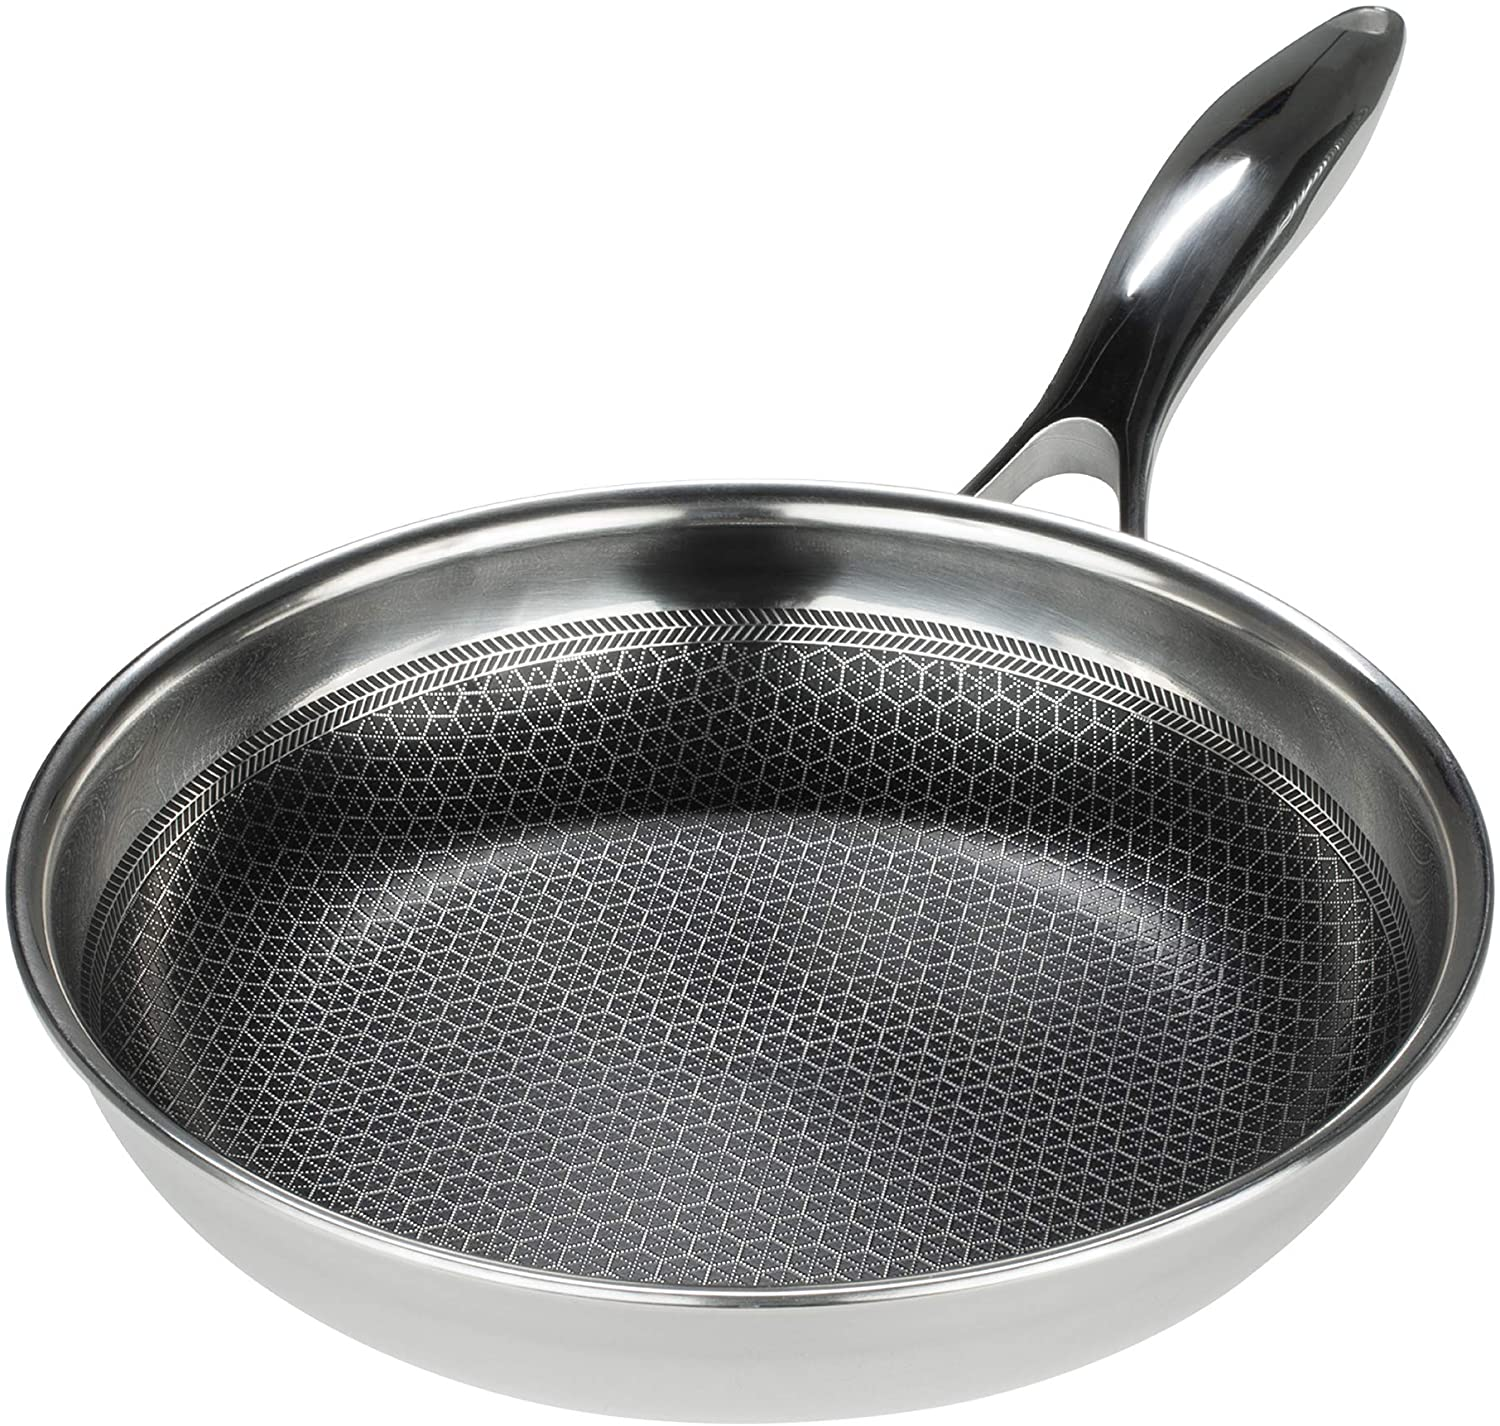 Black Cube Hybrid – Stainless Steel Pan with Non-Stick Coating